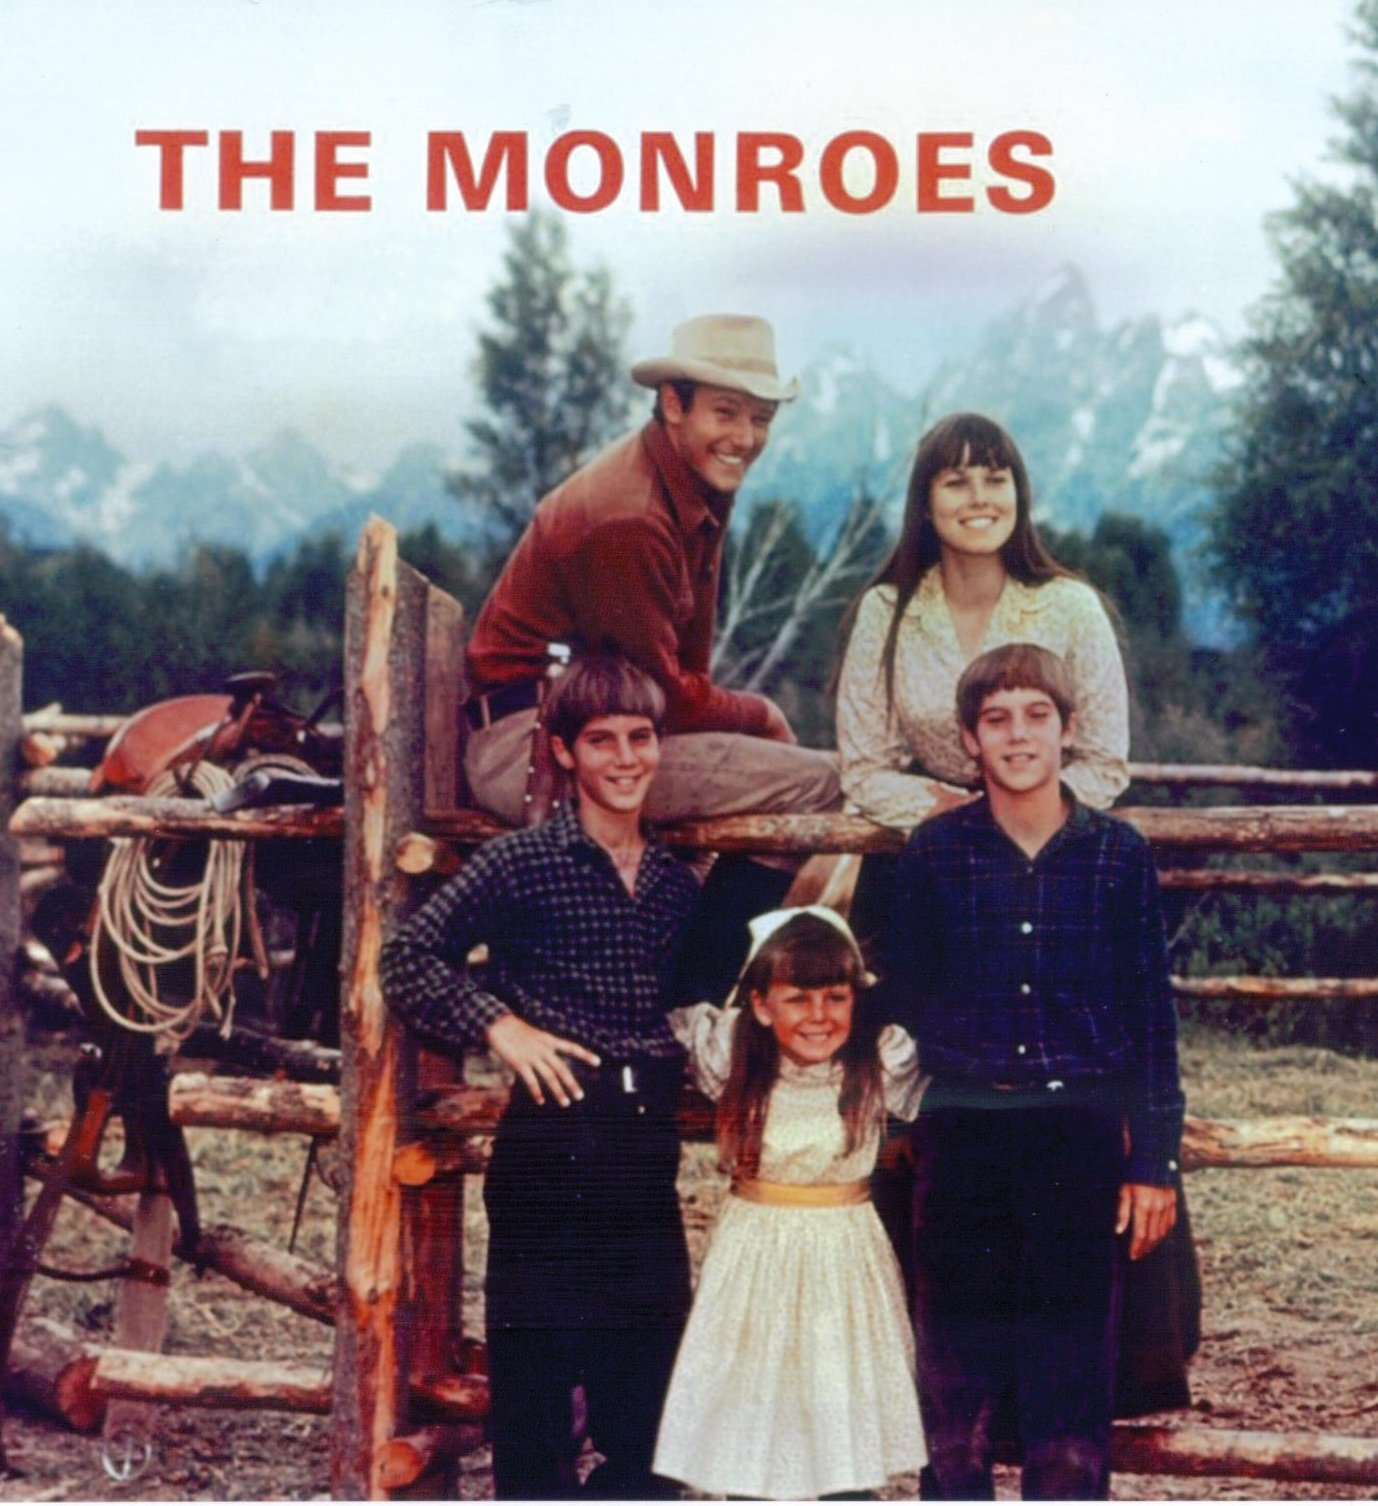 The Monroes  (incomplet)